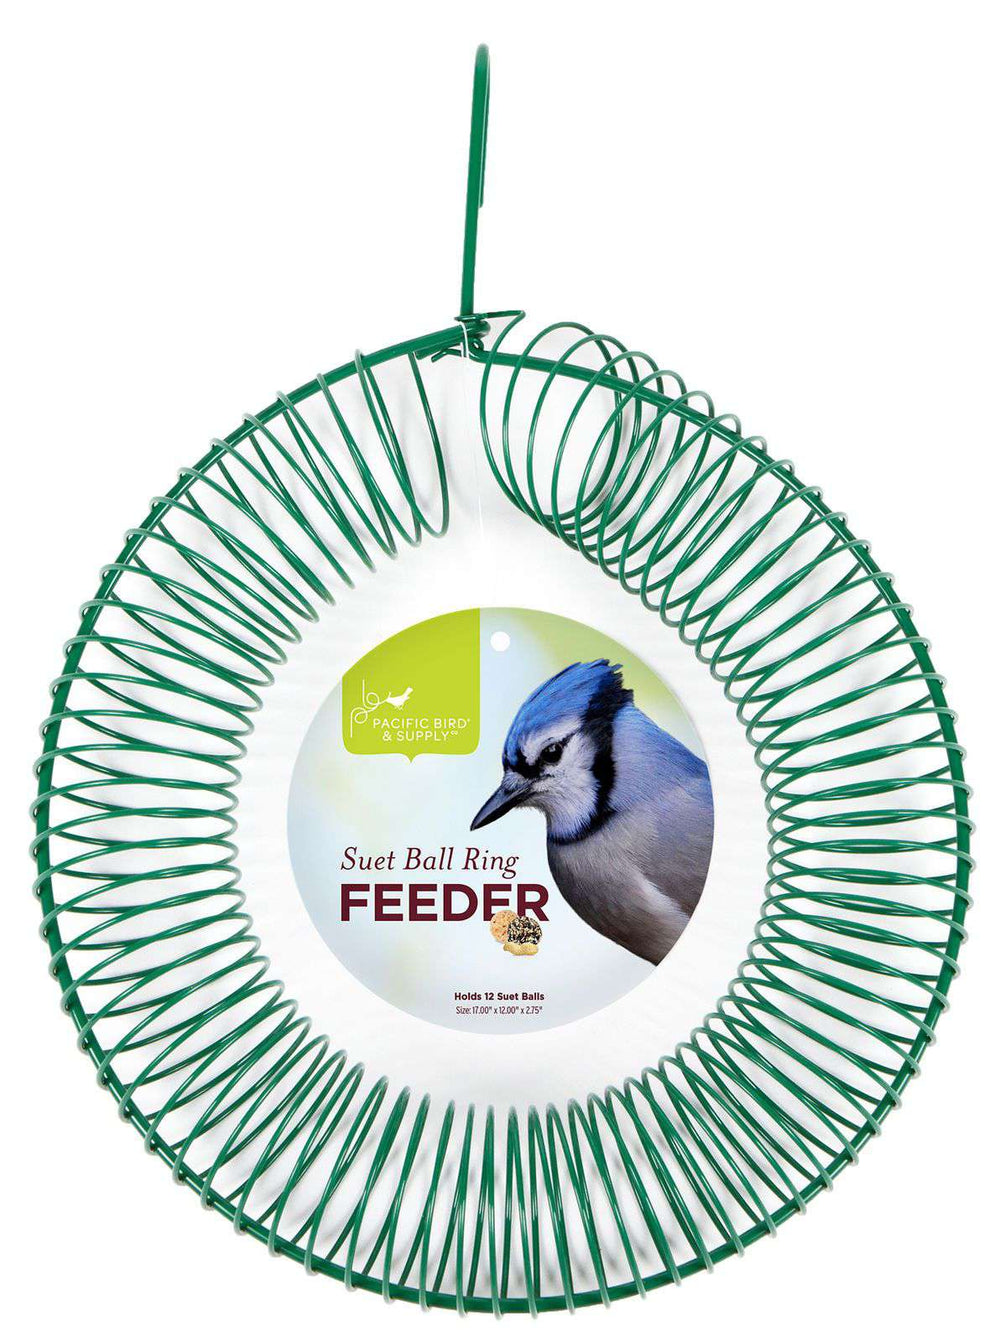 Pacific Bird Green Ring Suet Ball Feeder